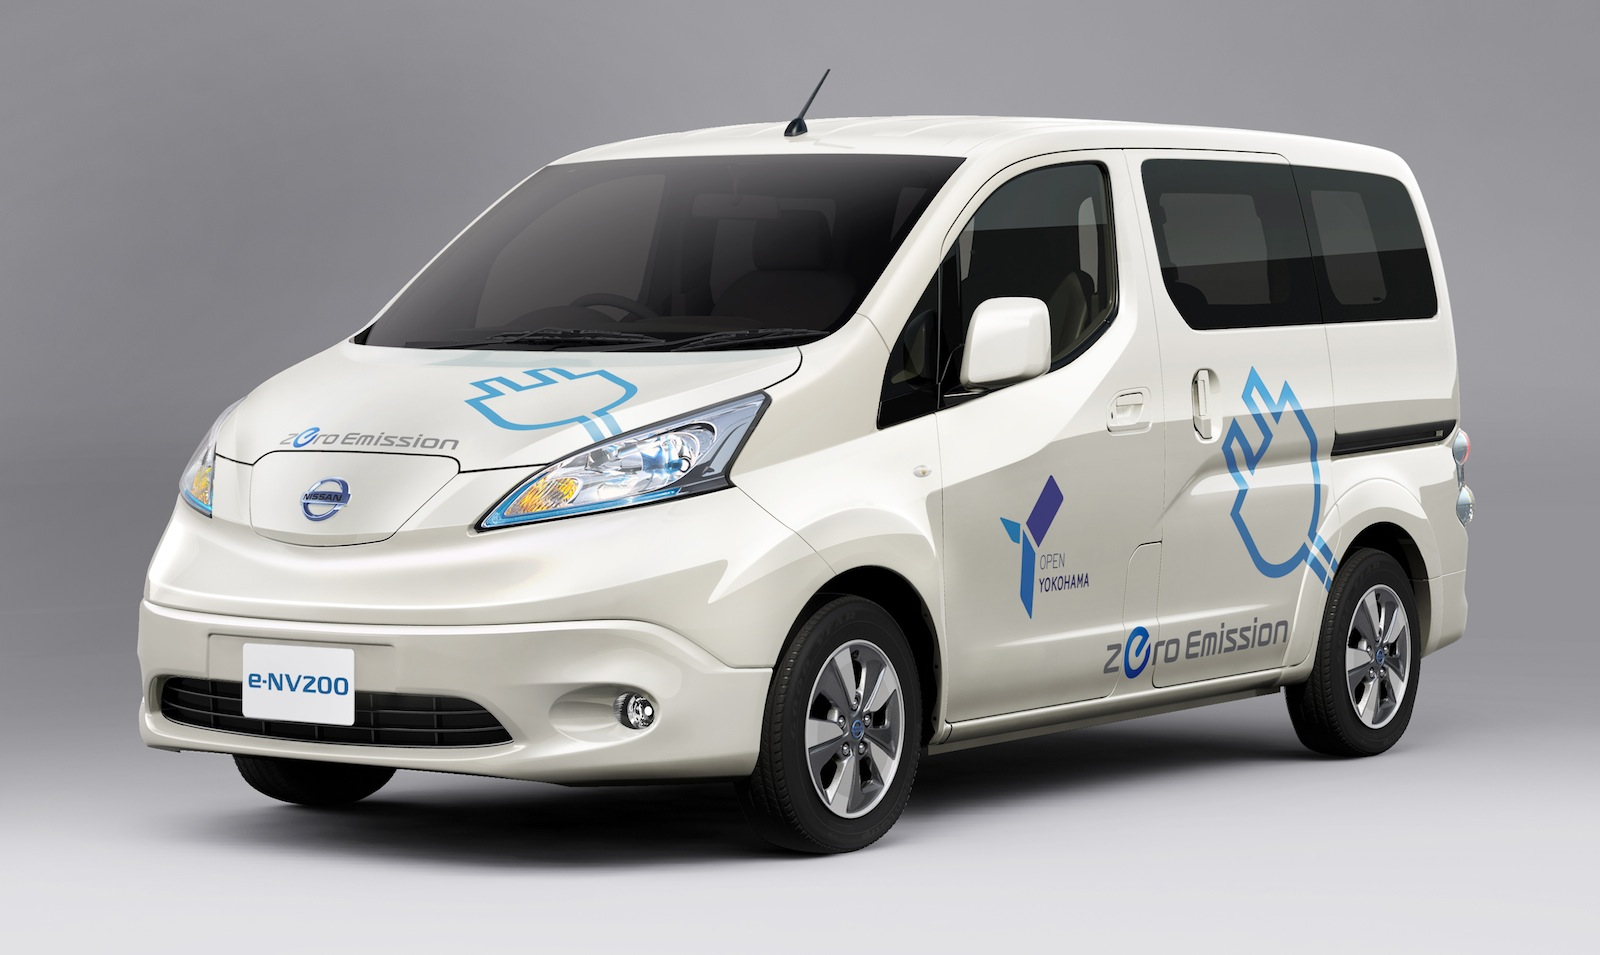 Nissan Nv Review >> Nissan e-NV200: electric van revealed - photos | CarAdvice